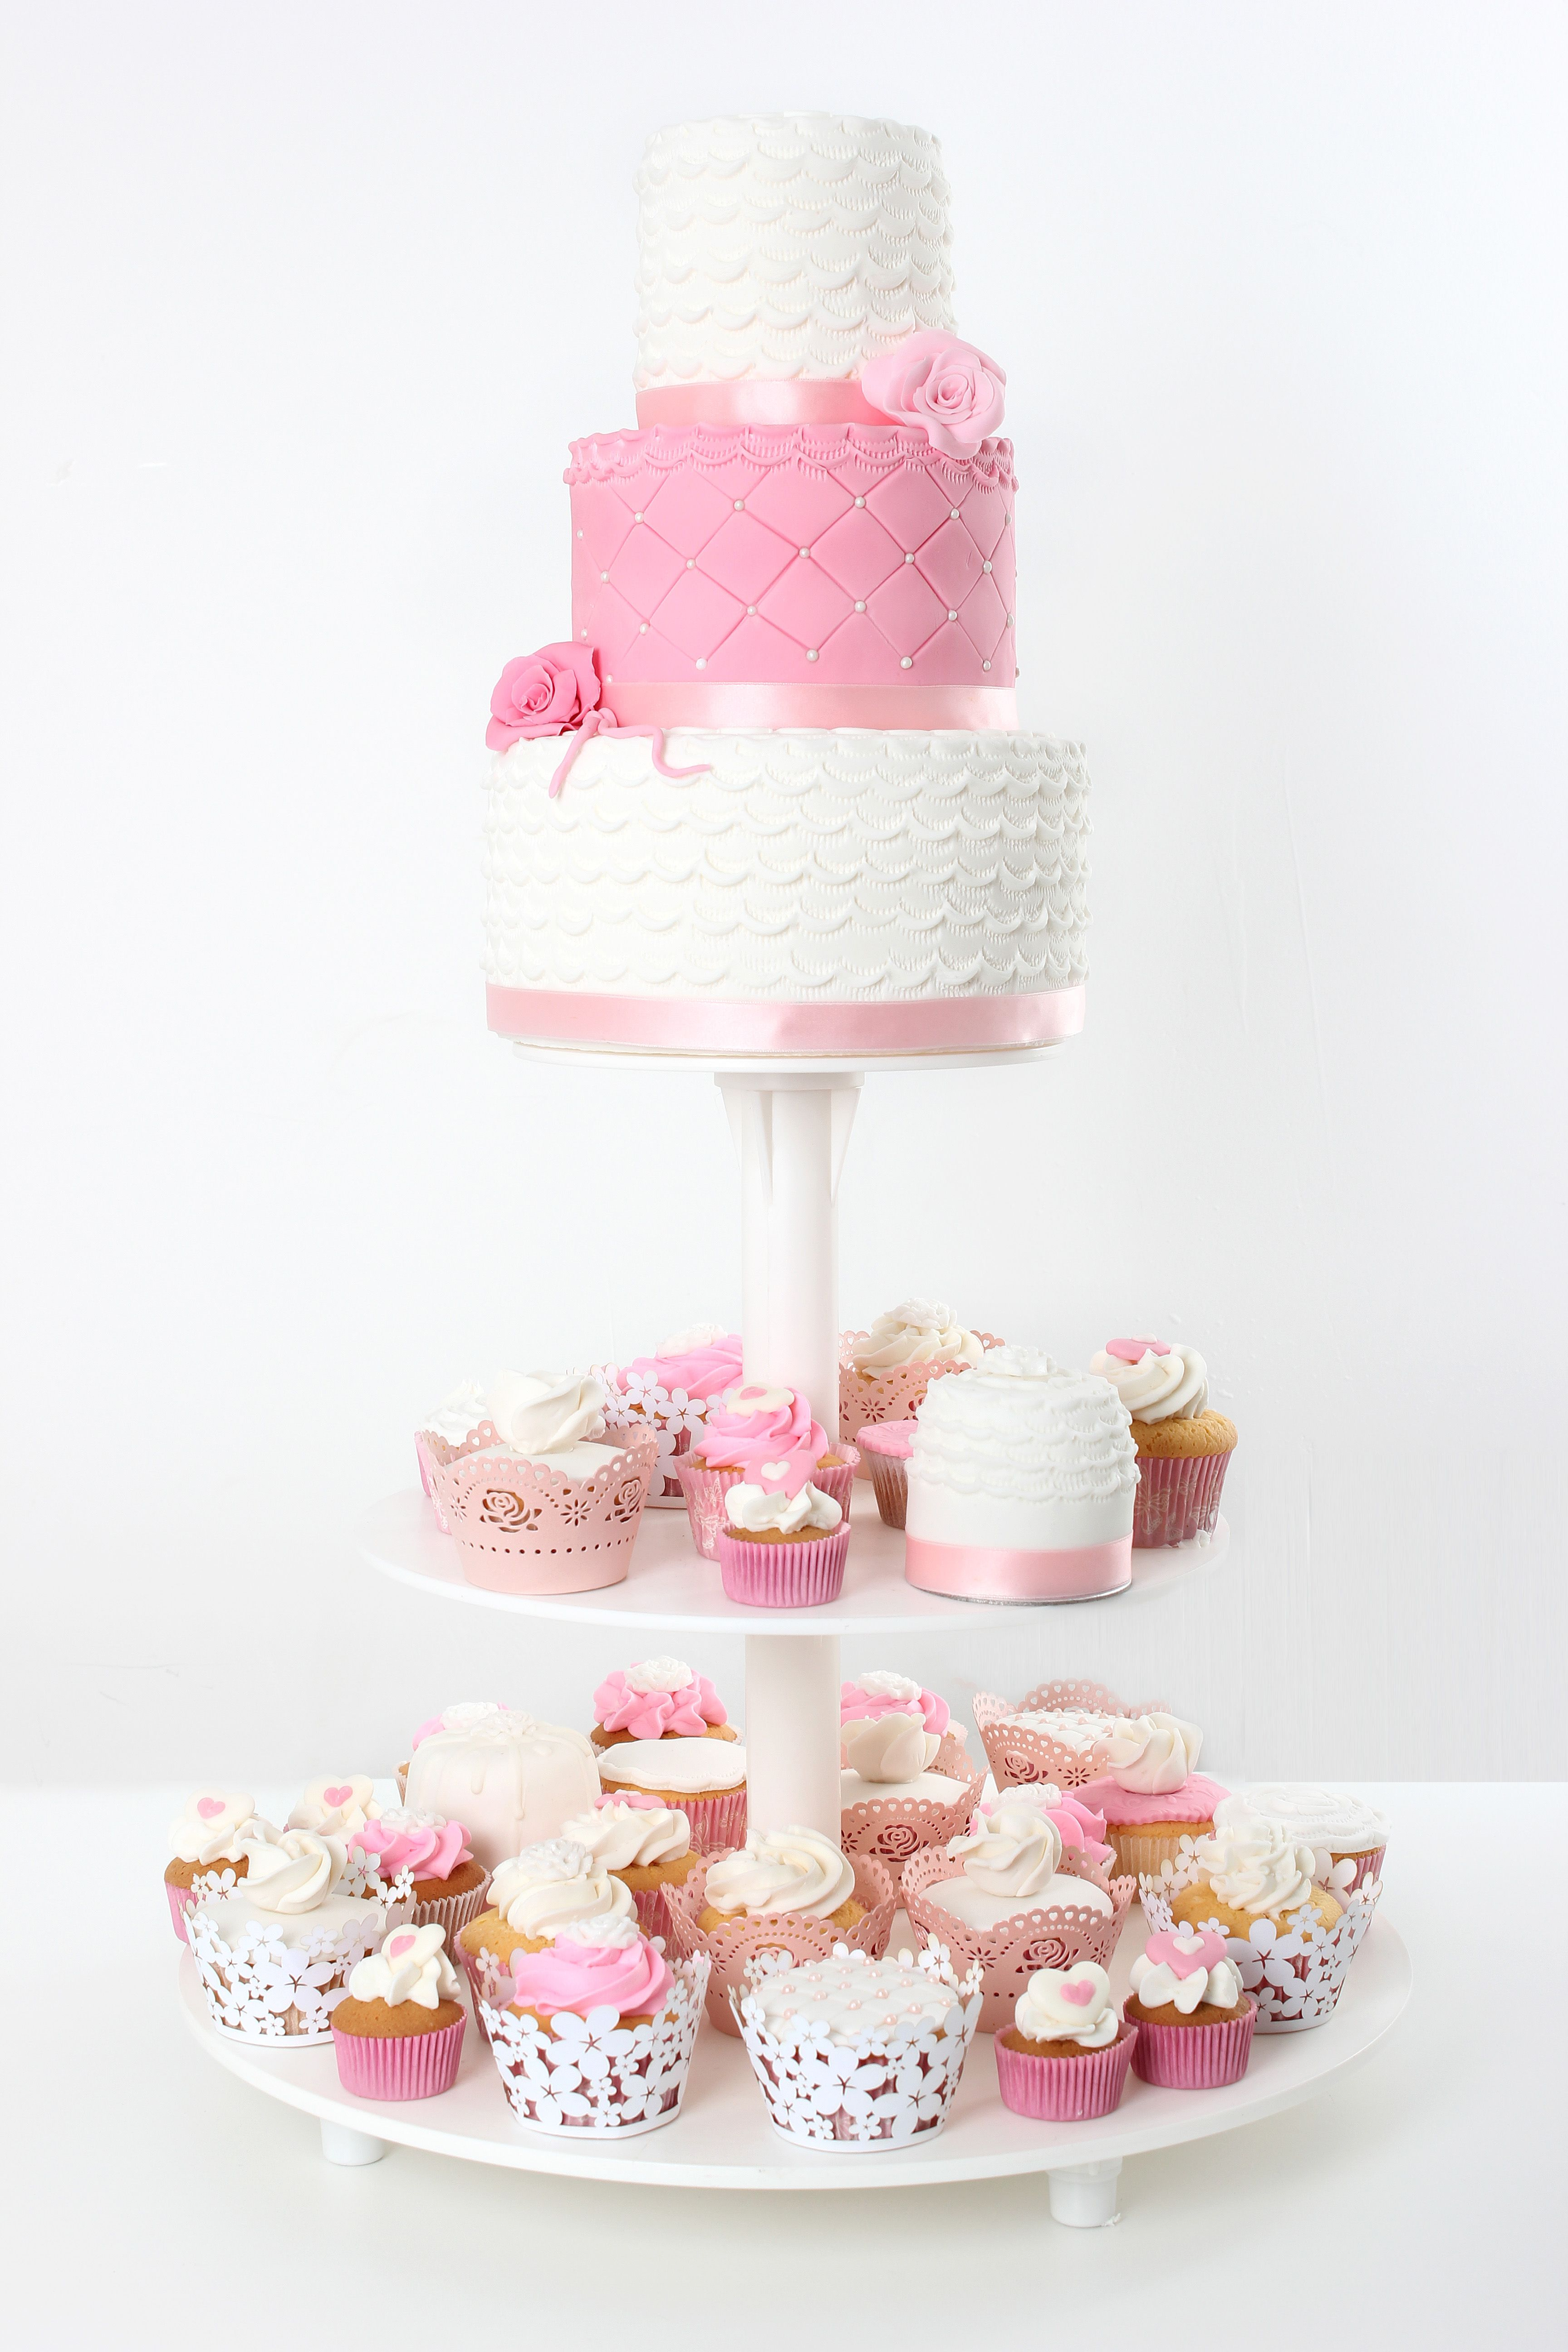 mini cakes, wedding cake and cupcakes - A pink and white wedding ...